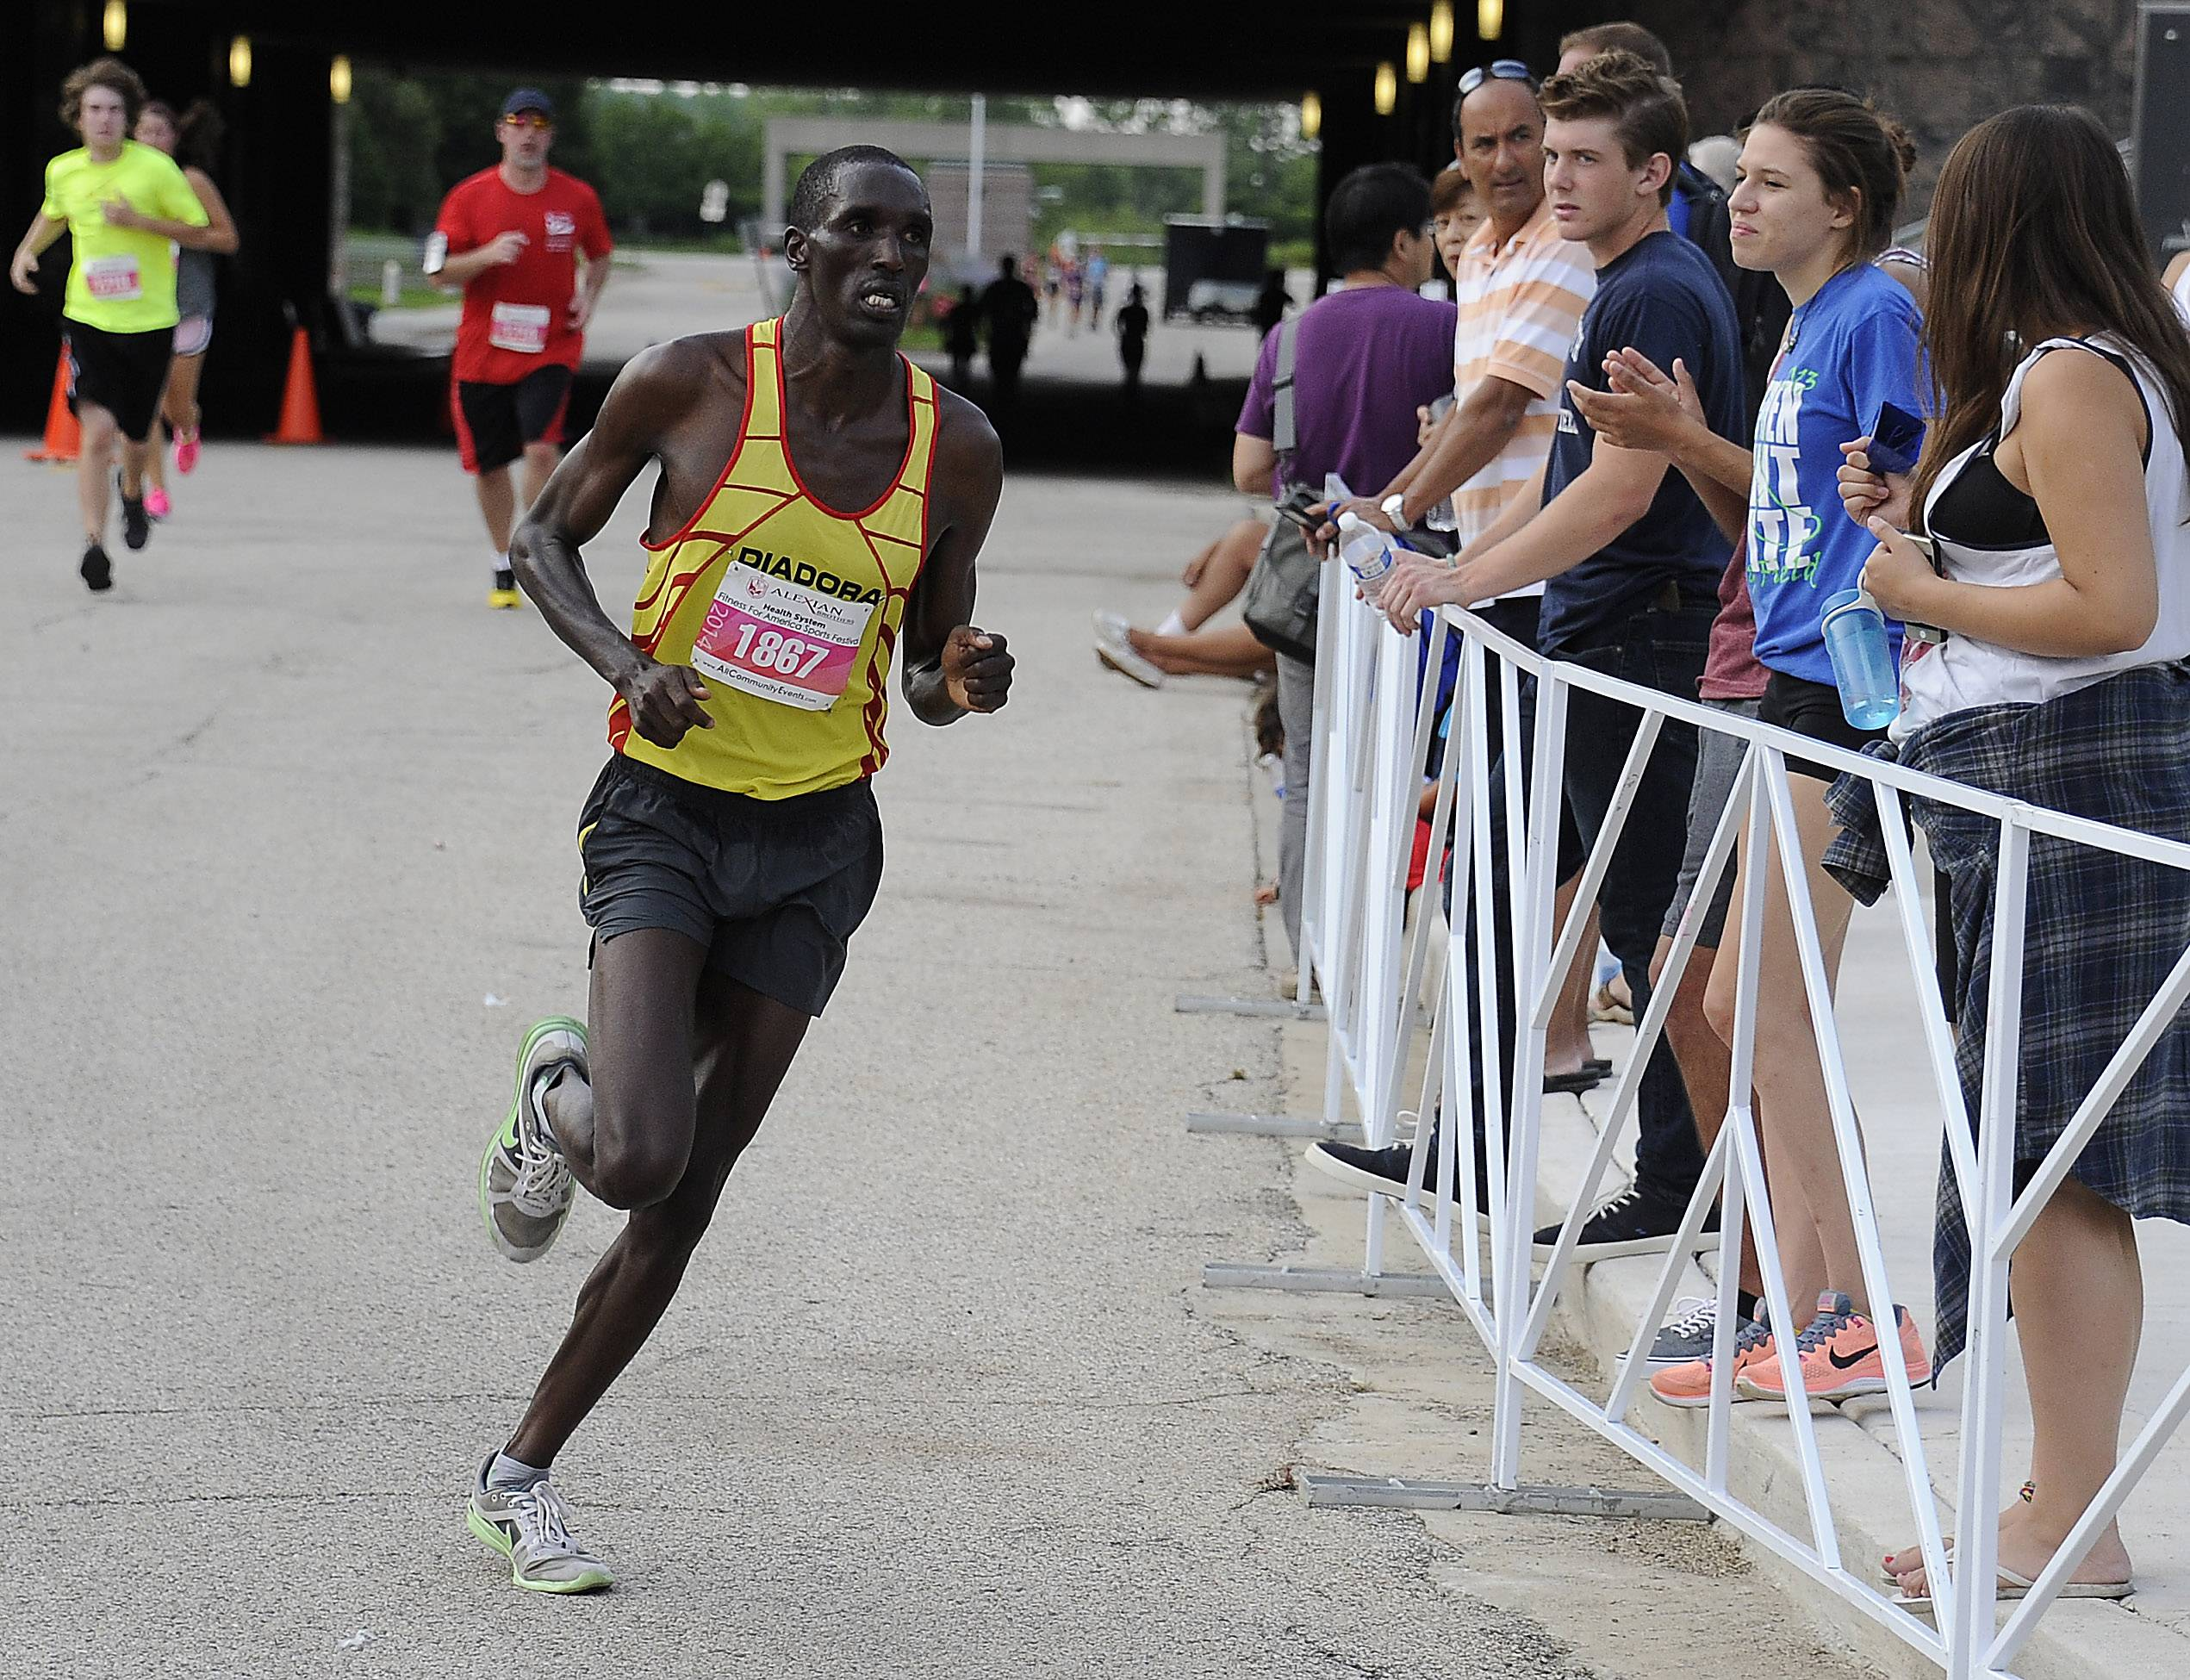 Patrick Cheptoek of Uganda wins the sixth annual Alexian Brothers Fitness for America Sports Festival half marathon race Saturday with a time of 1:4:50 as the crowd cheers him on near the finish in Hoffman Estates.